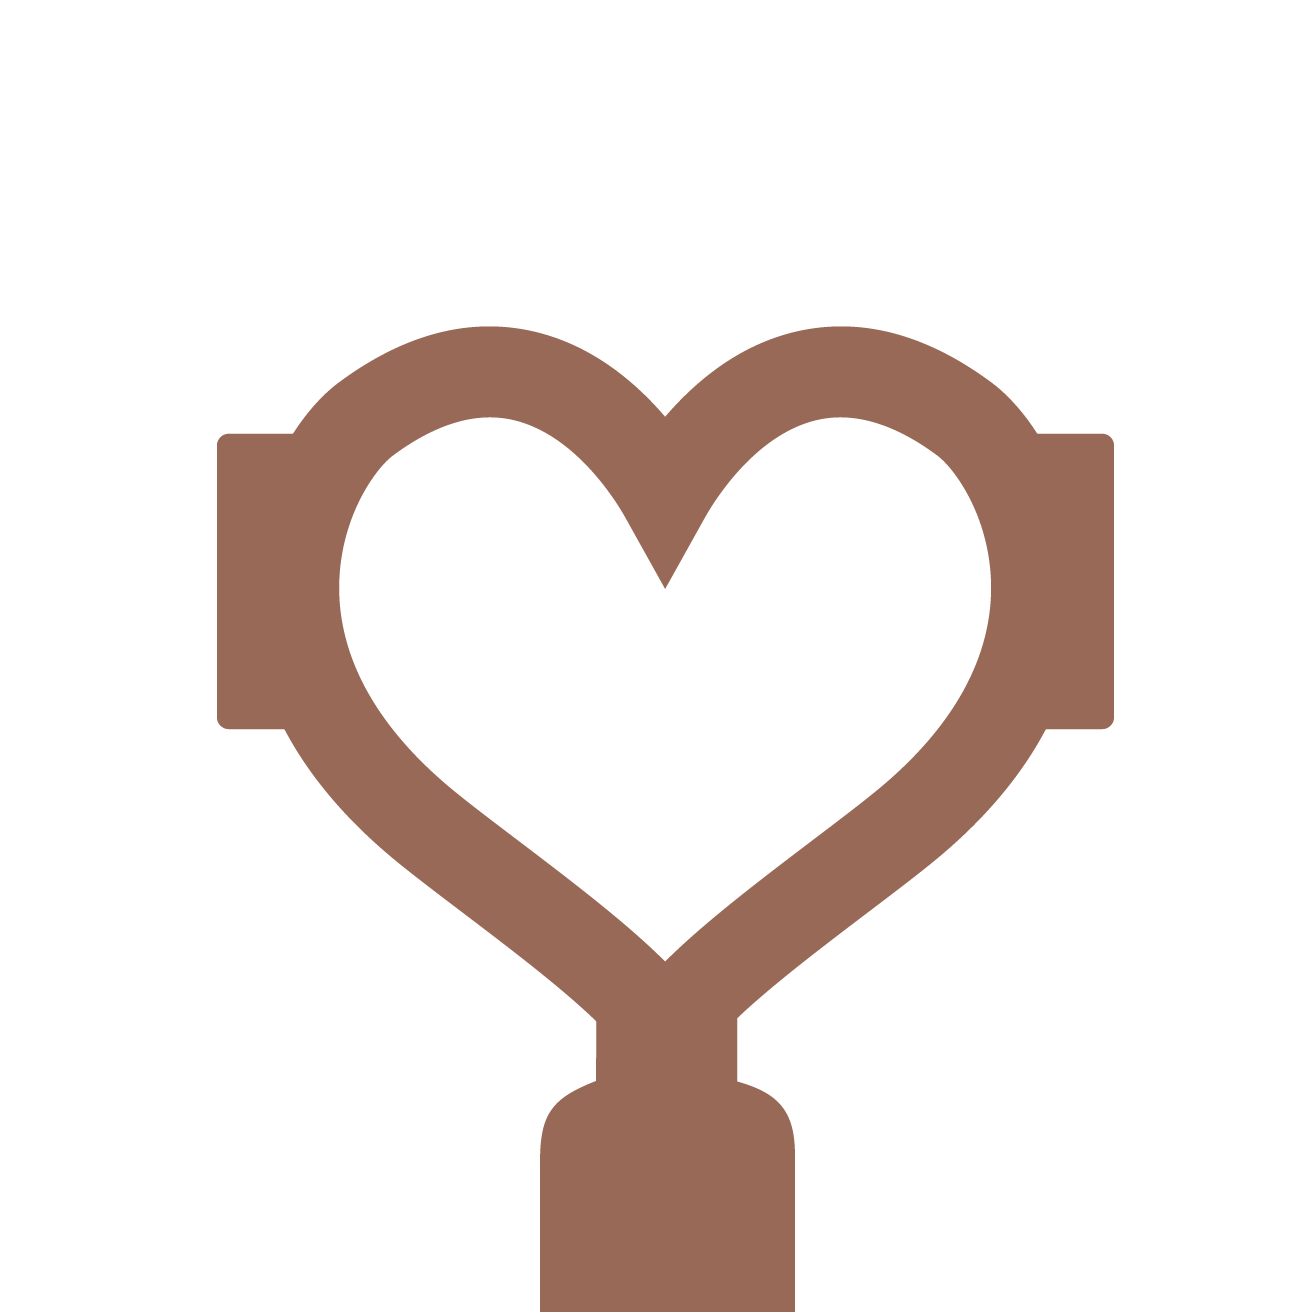 Moccamaster Technivorm KBG741 AO Pastel Green, with FREE 250g bag of Coffee